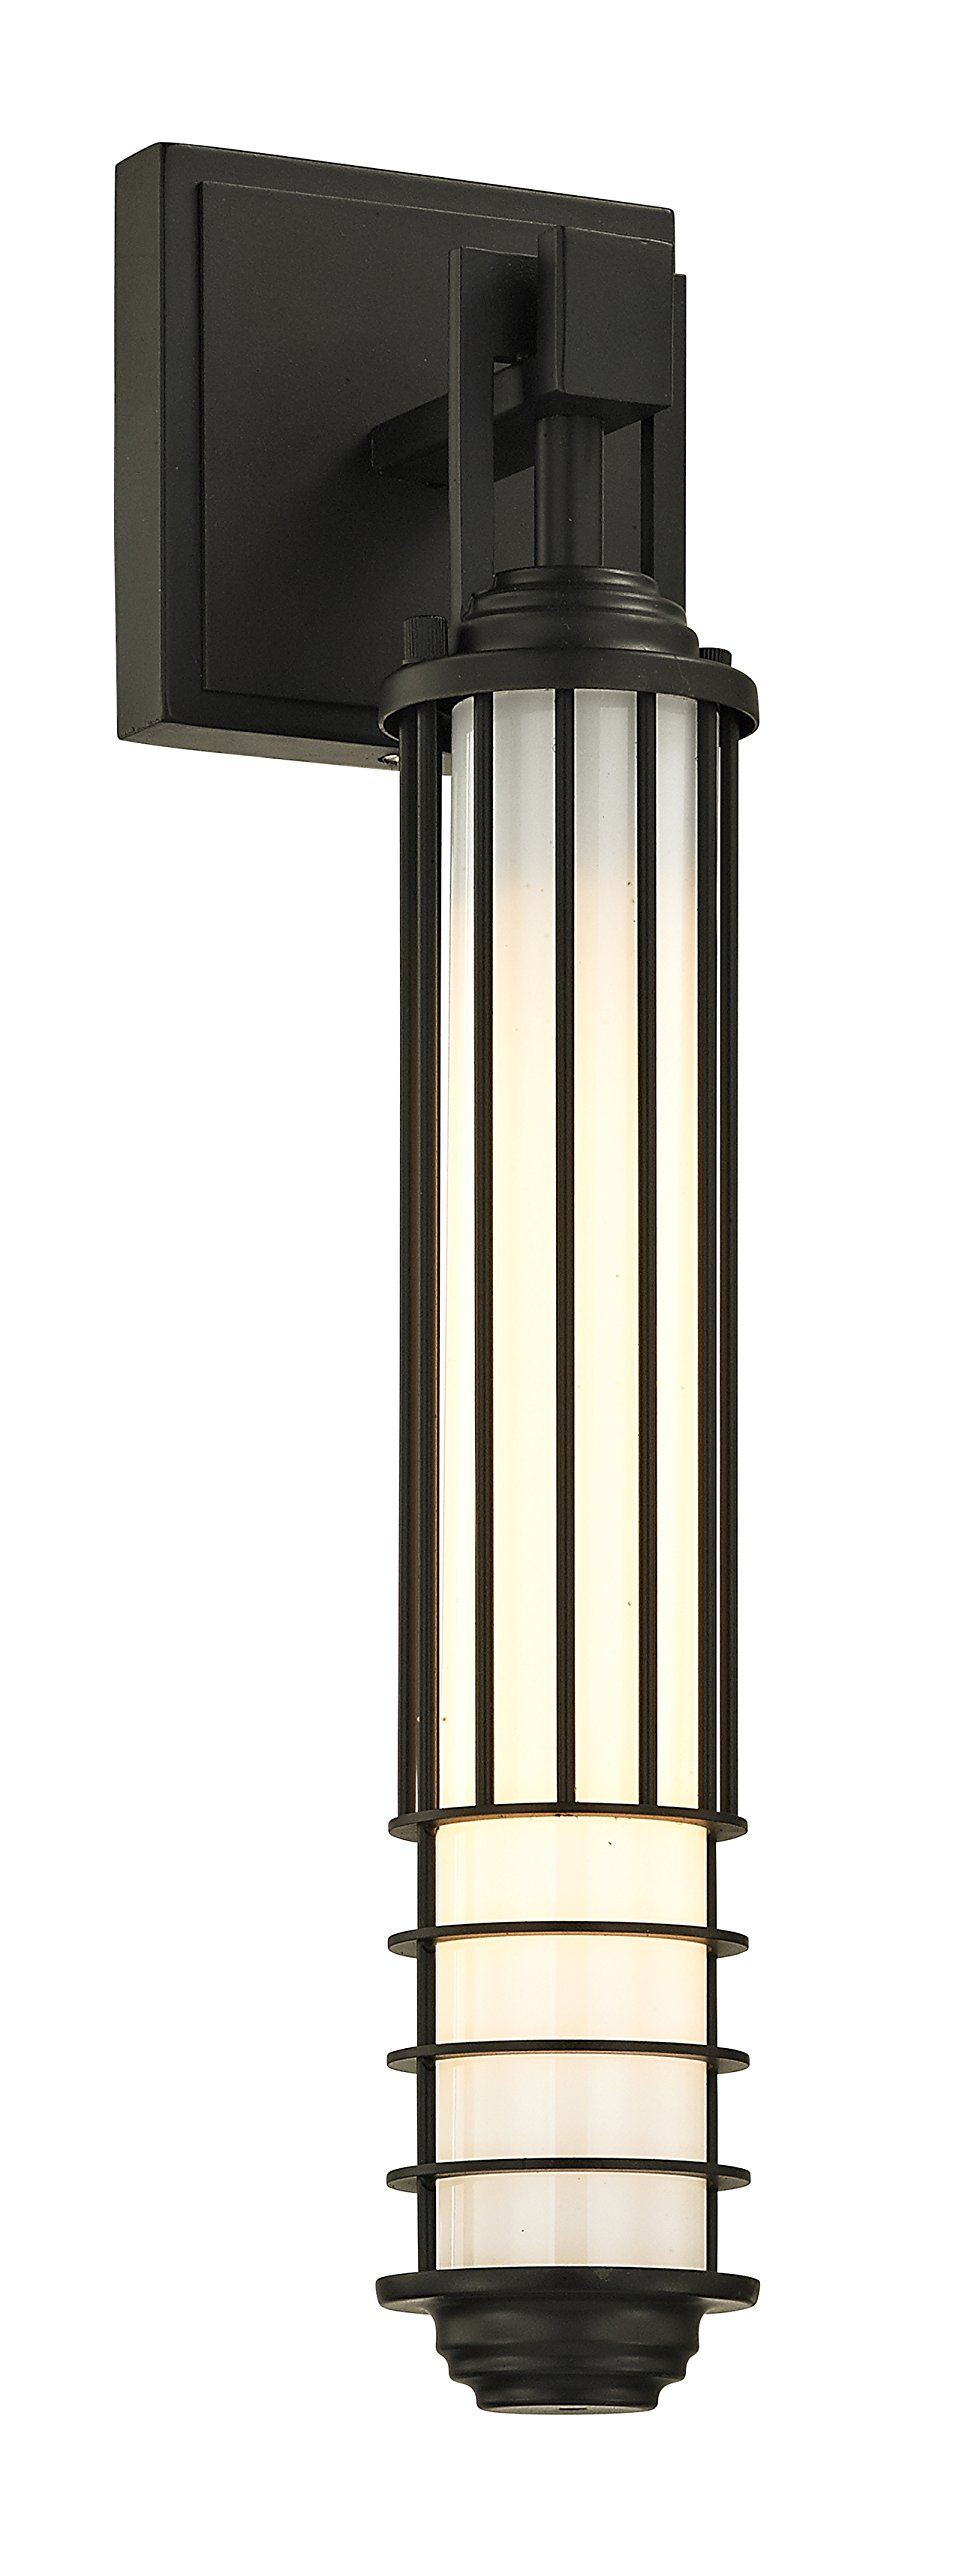 Troy Lighting B6401 Powell Street Outdoor Wall Sconce, Small, Powell Street Bronze